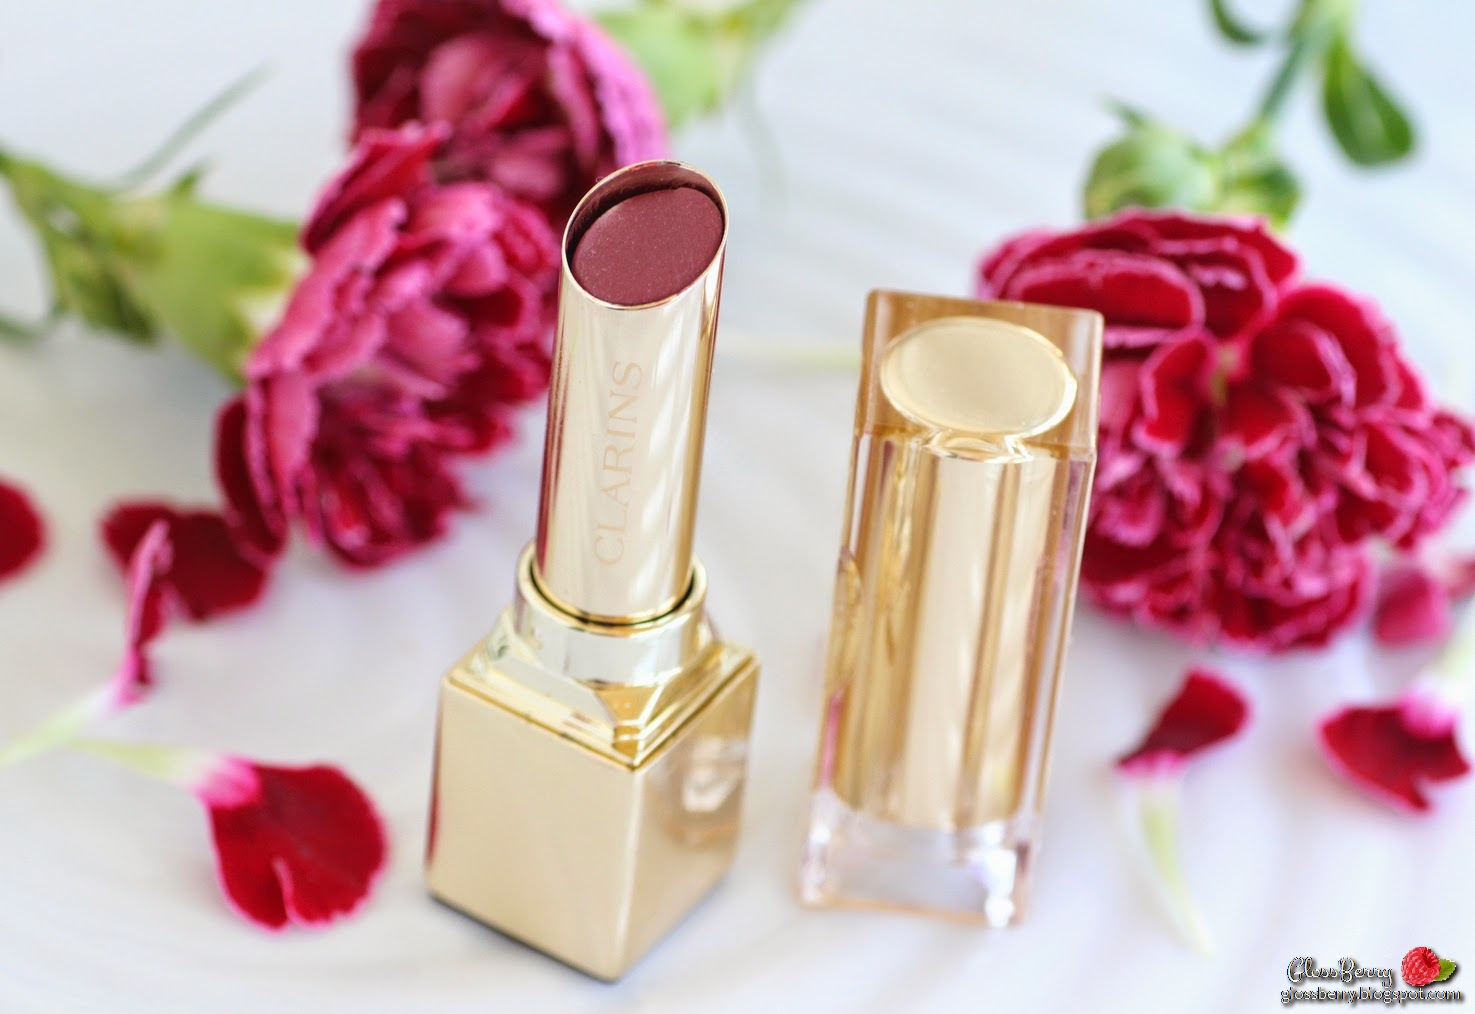 Clarins - Rouge Eclat - 06 True Aubergine review swatches lipswatch lips plum winter lipcolor beauty blog גלוסברי בלוג ביוטי איפור וטיפוח שפתון קלרינס מומלץ לסתיו חורף שזיף חציל סגול סקירה